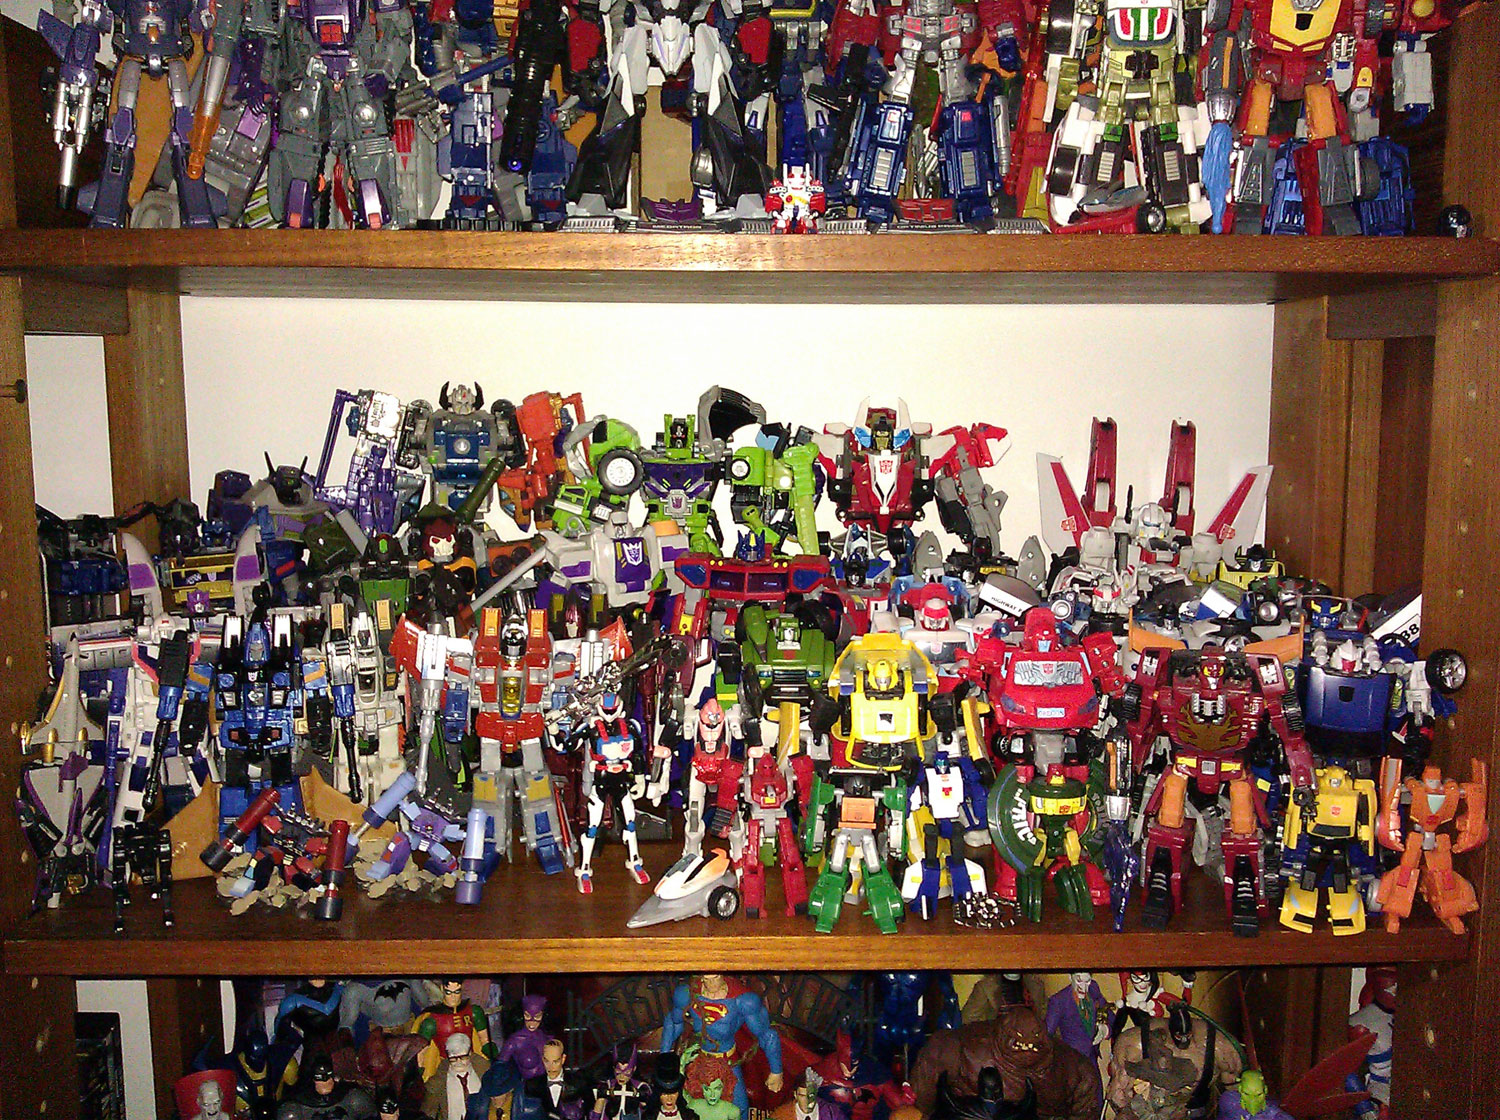 Henry's Action Figure Collection Photo 03 from 2010